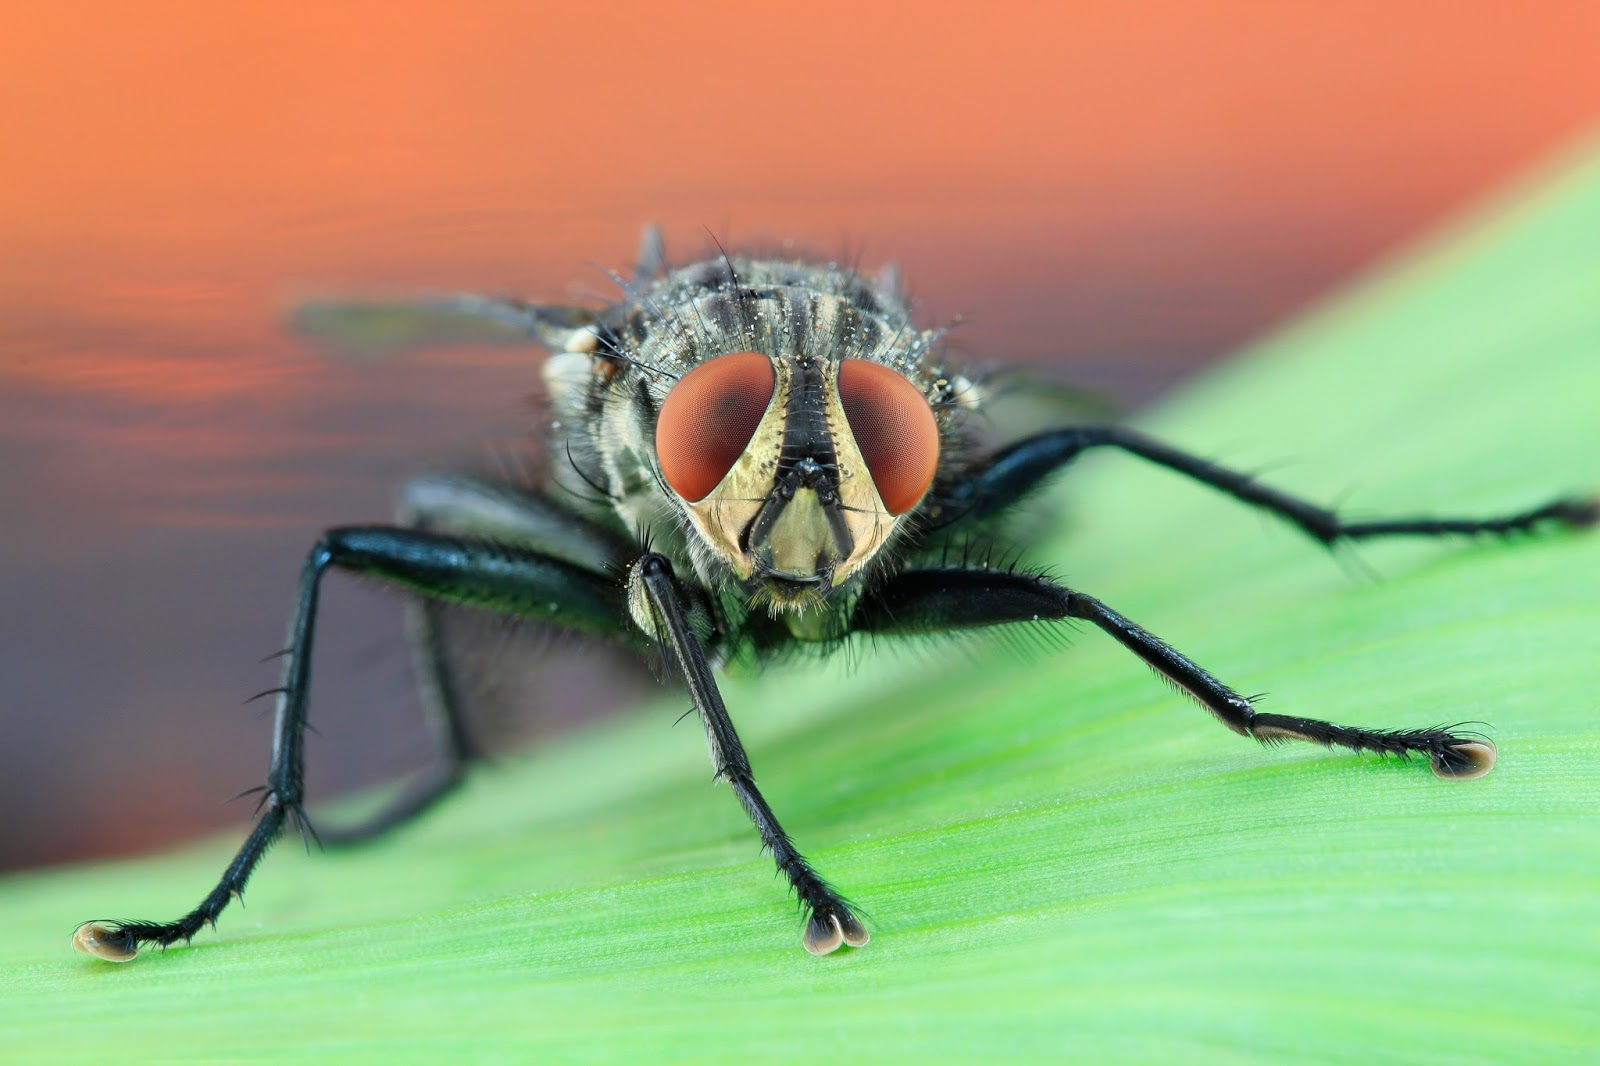 A macro picture of a housefly.